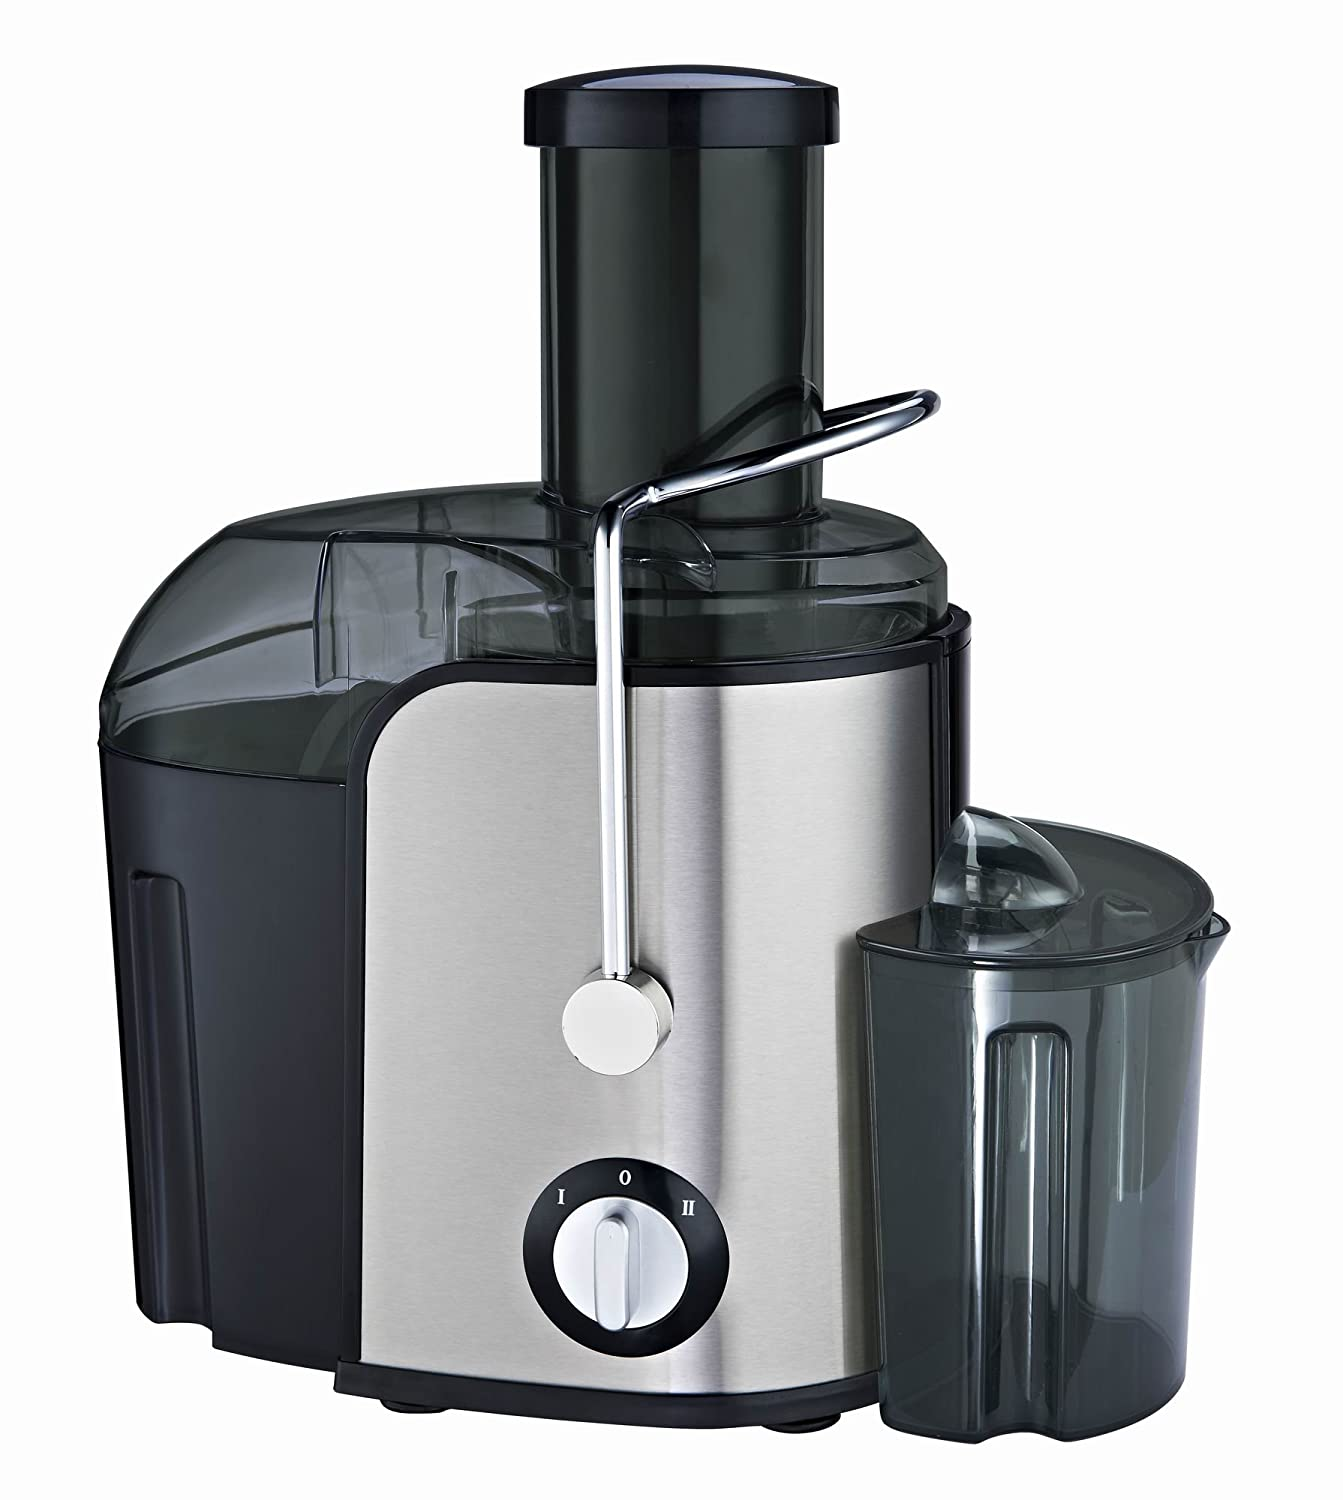 Coway Slow Juicer Review : Slow Juicer Harga. Homemade Juice Easily. Slow Juicer Silver Hwsbe18 W Drum Set. Picture Of ...